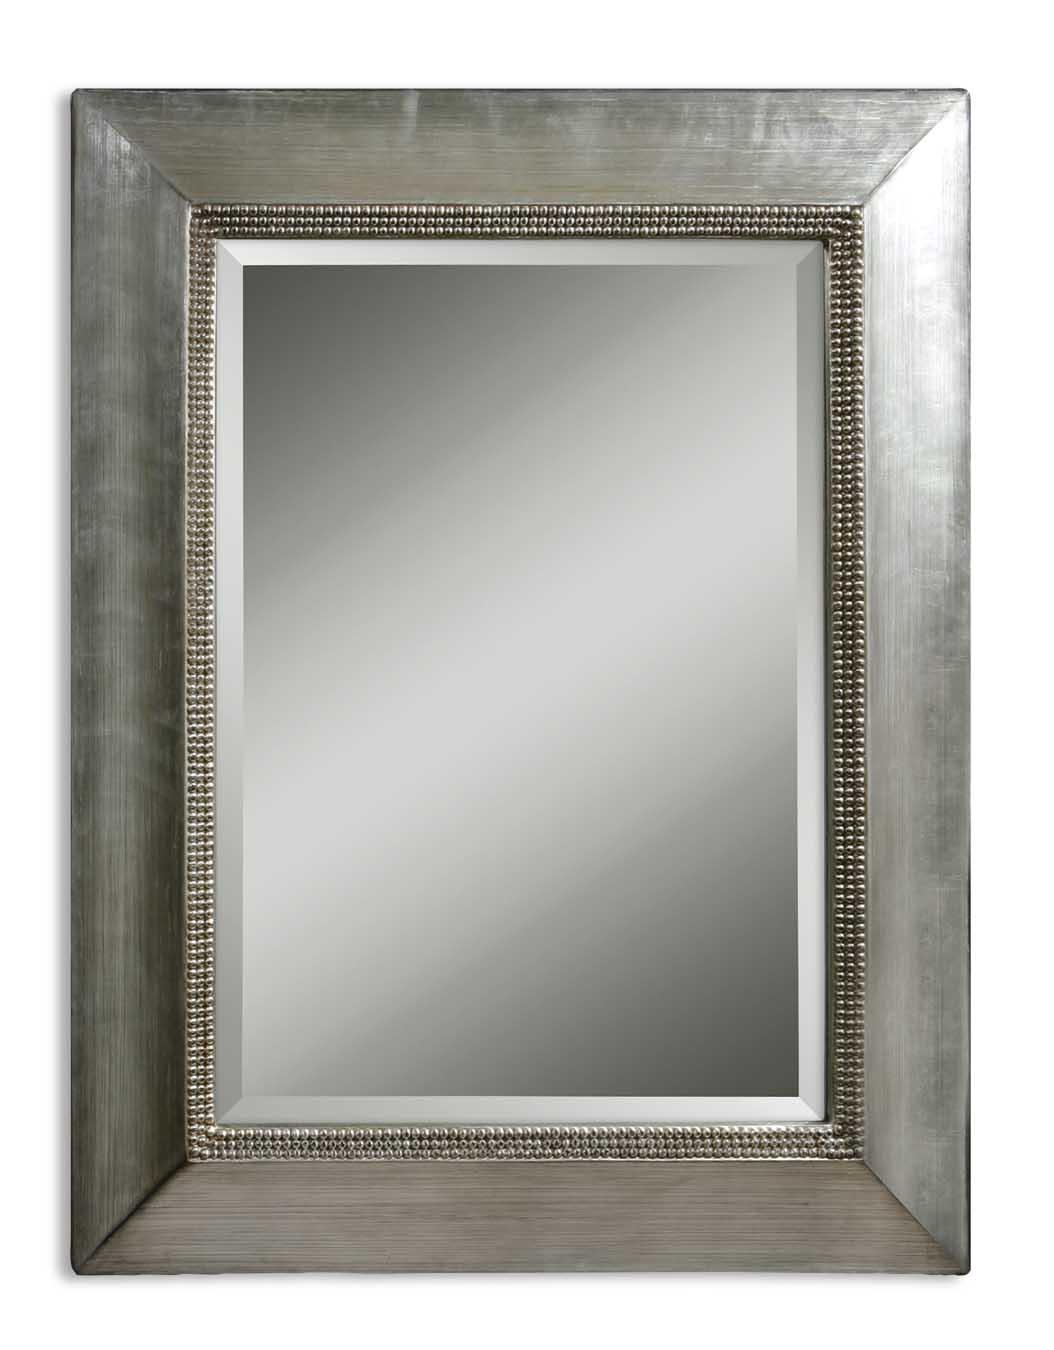 Uttermost Mirrors Fresno Mirror - Item Number: 11572 B